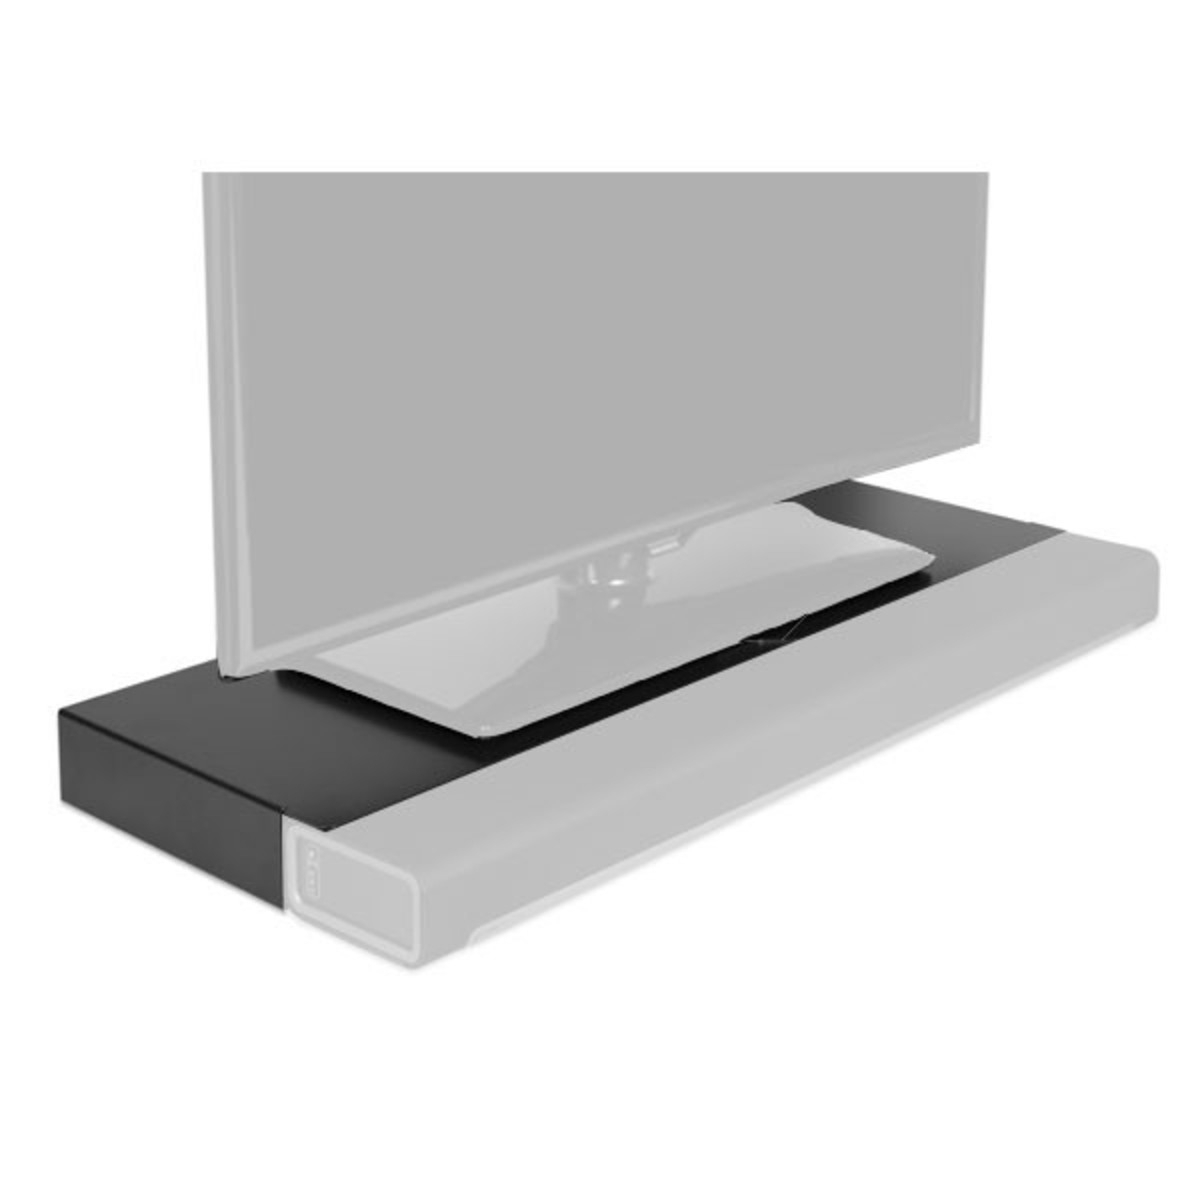 Sonos Tv Stands With Regard To Favorite Flexson Tv Stand For Sonos Playbar, Black At Gear4music (View 2 of 20)